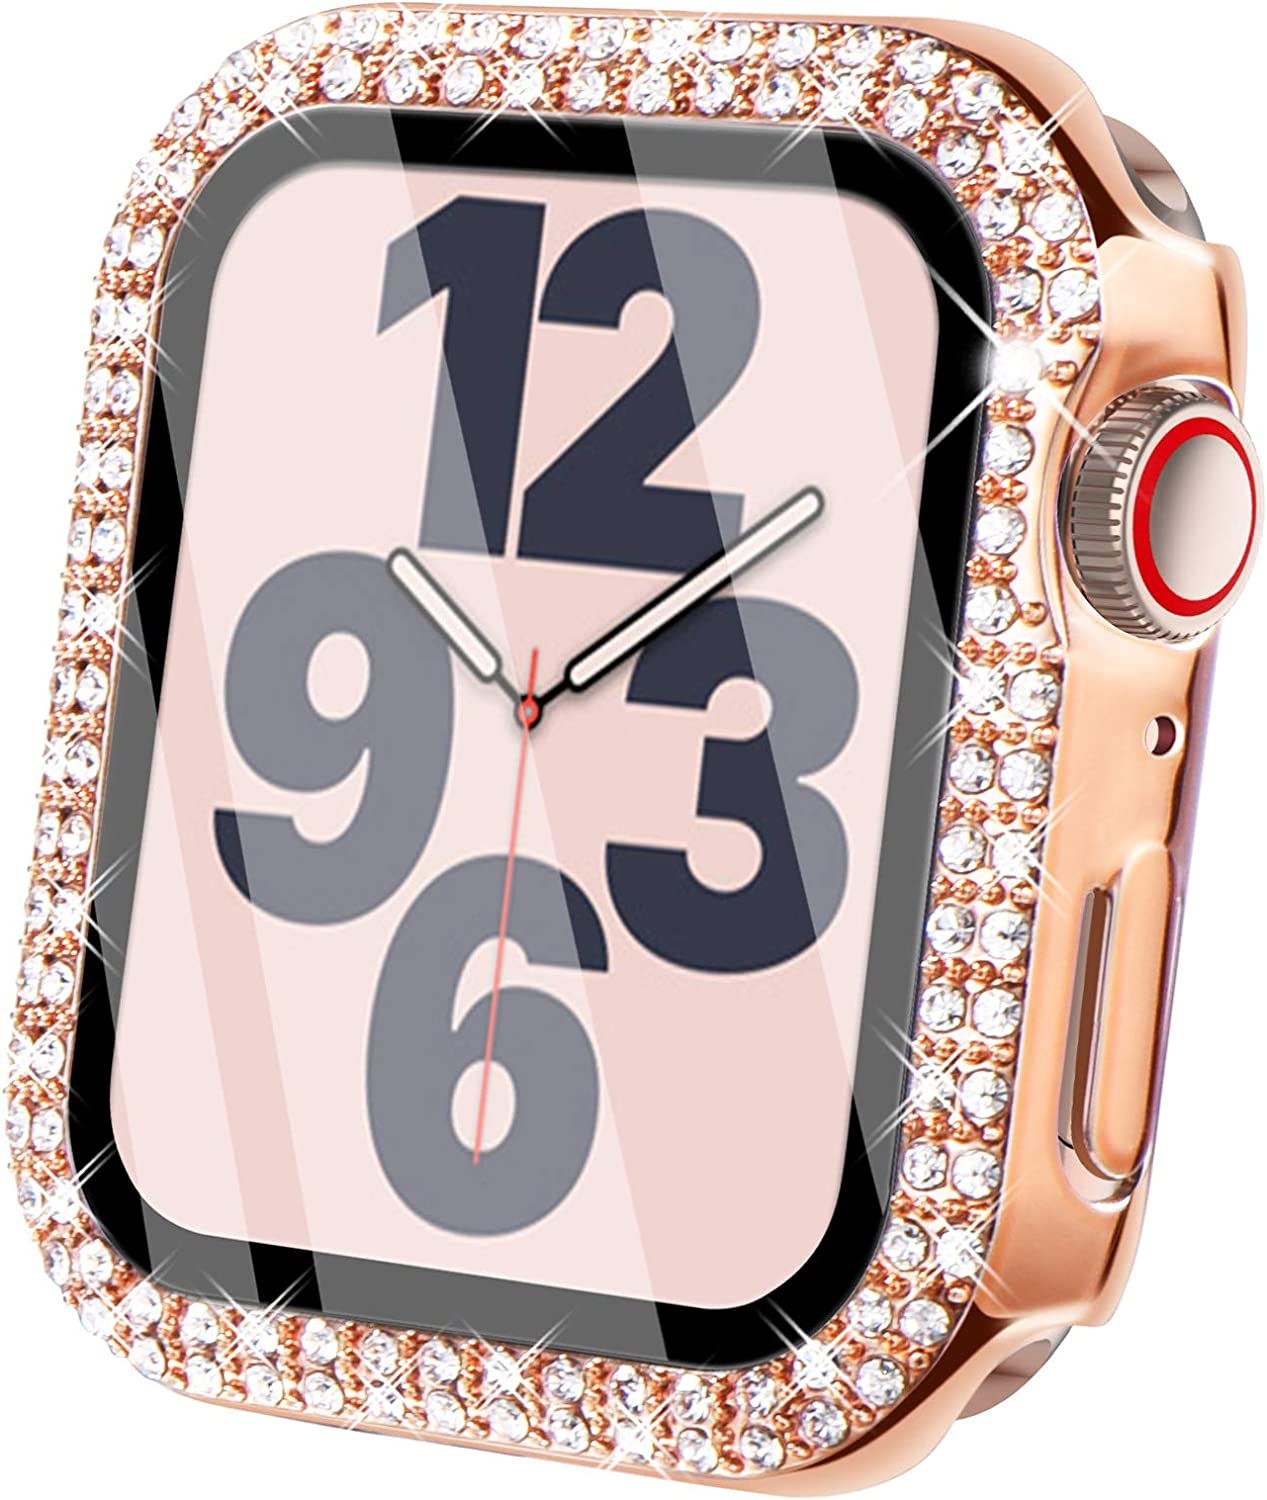 Surace Compatible for Apple Watch Case with Screen Protector 40mm, Bling Crystal Tempered Glass Overall Protective Case Compatible with Apple Watch Series 6/5/4/3/2/1 38mm 40mm 42mm 44mm, Rose Gold